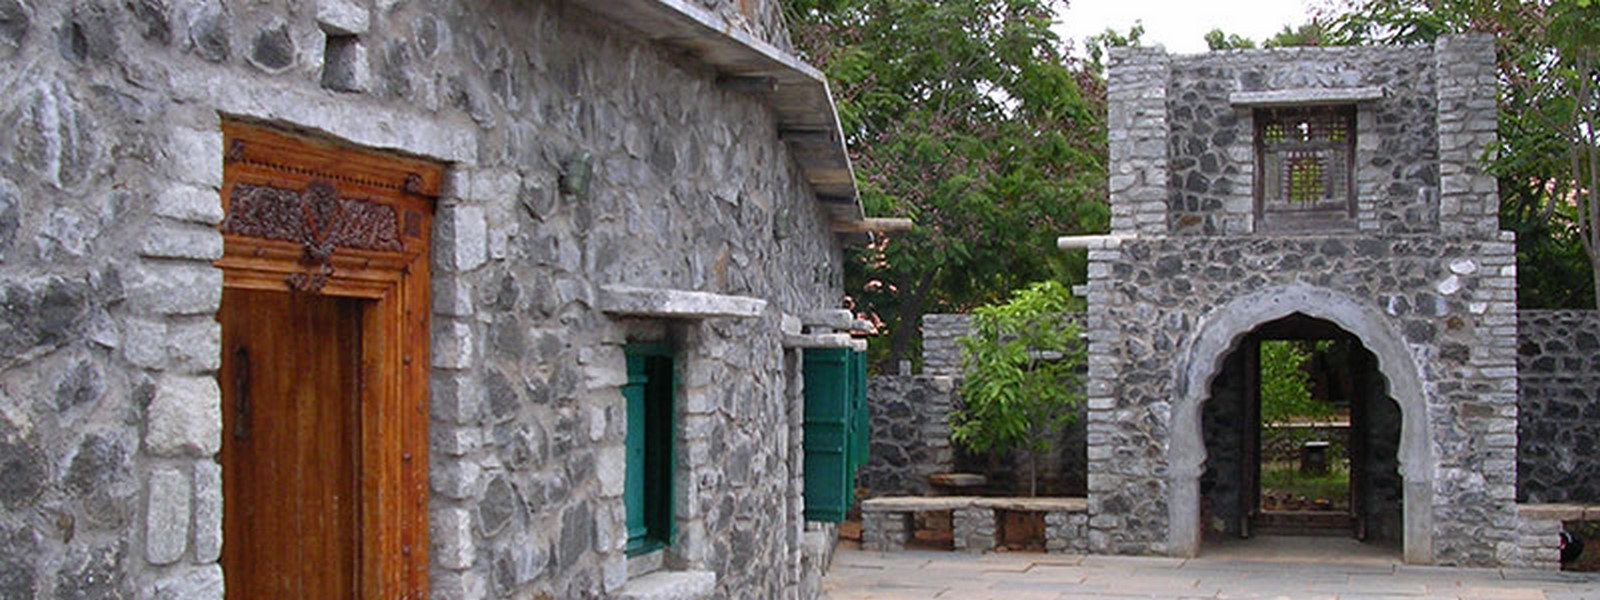 10 Examples of Vernacular architecture in South India - Sheet8